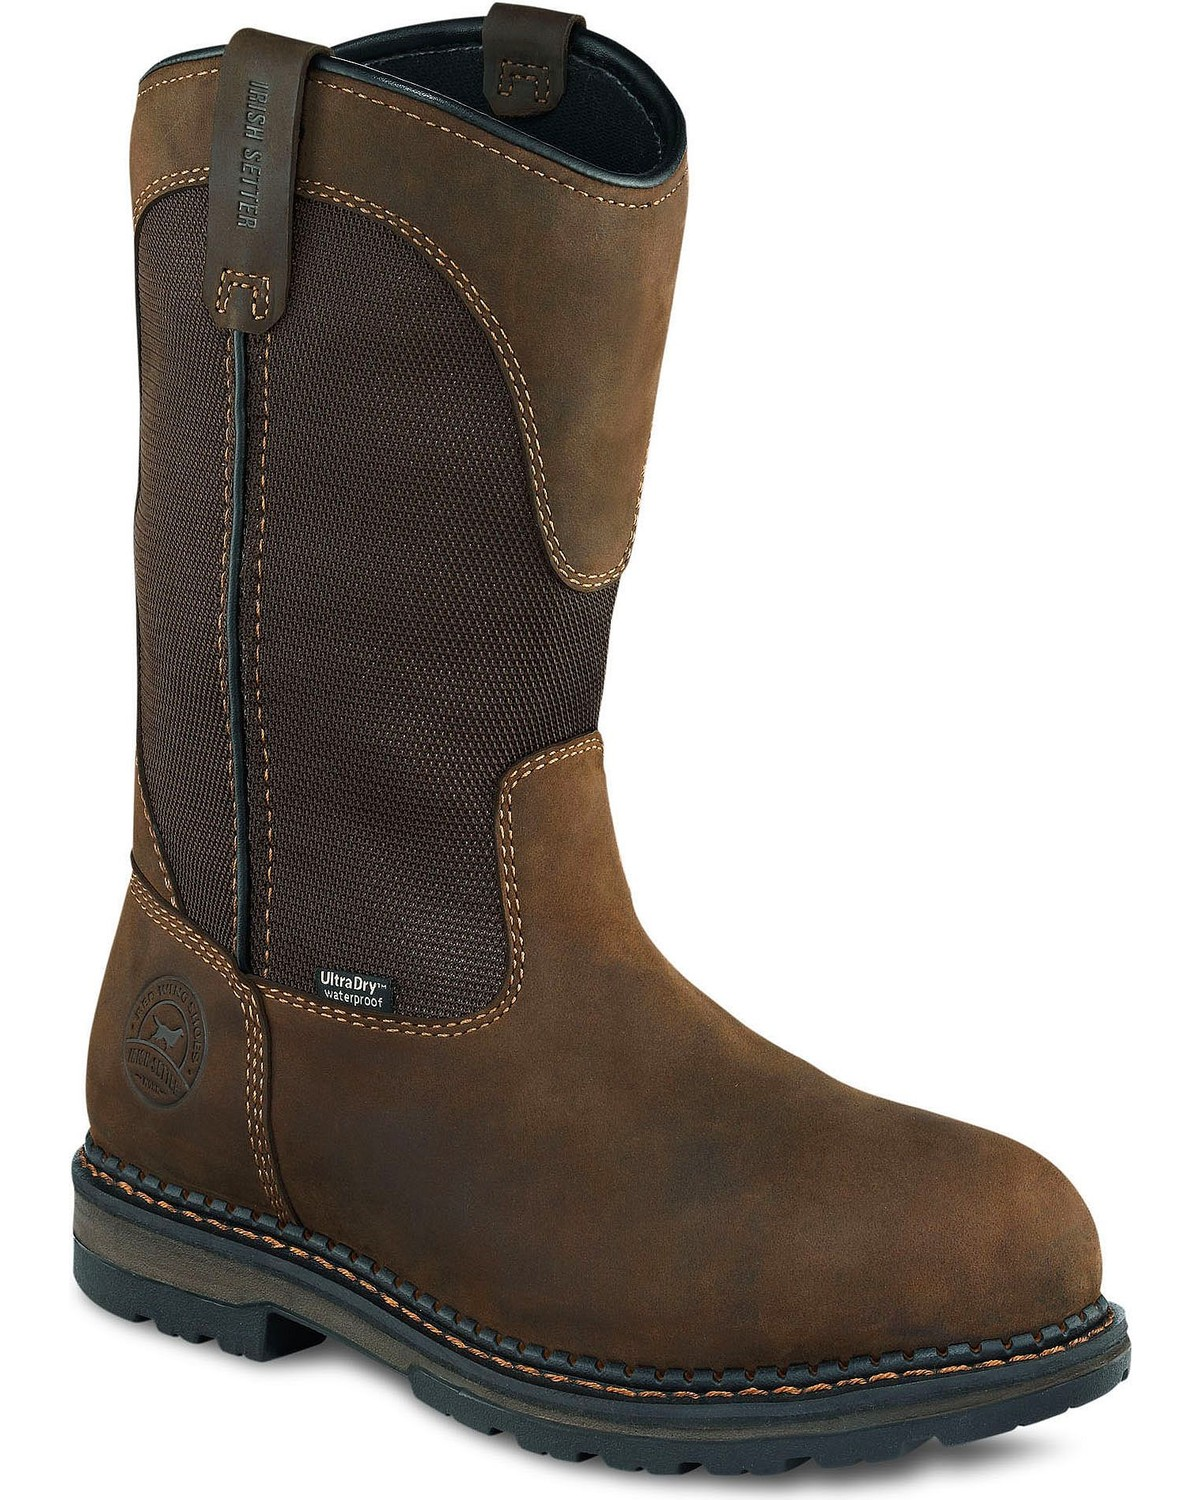 2b672b8e2fd Irish Setter by Red Wing Shoes Men's Ramsey EH Waterproof Pull-On Work  Boots - Aluminum Toe